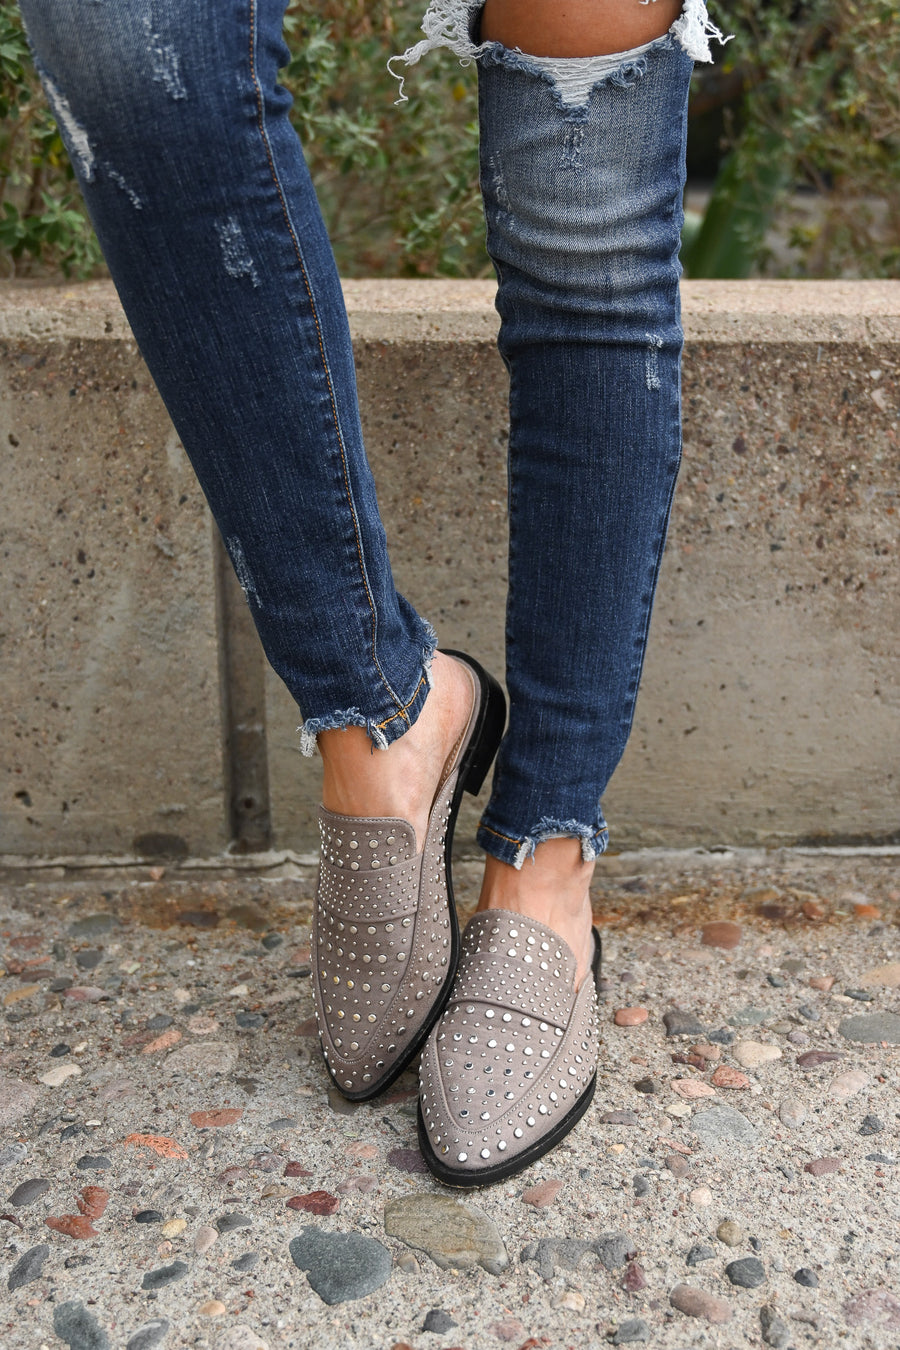 Richie Studded Mules - Grey women's slip on flats studded mules, Closet Candy Boutique 1